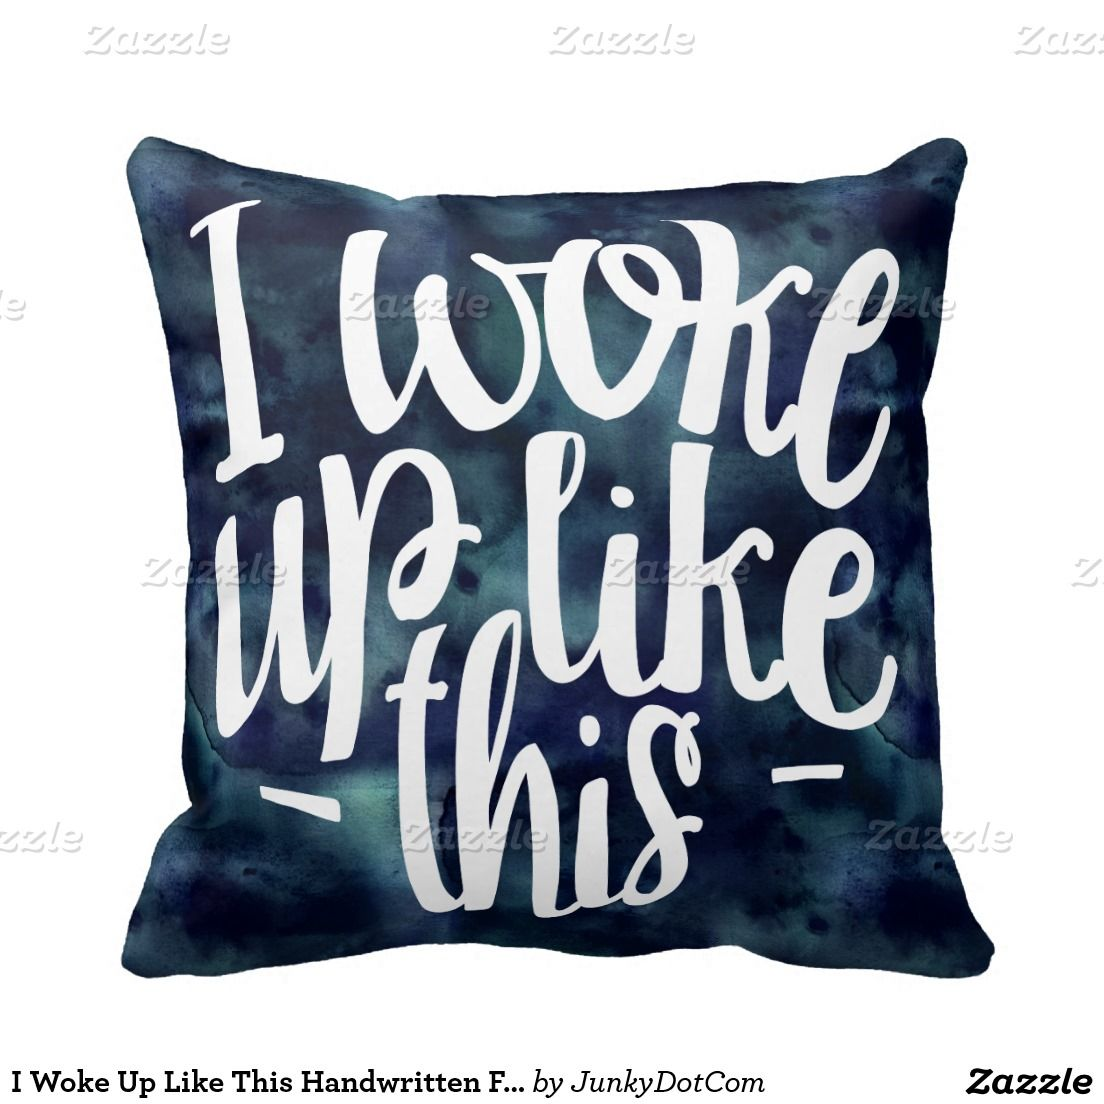 I woke up like this handwritten funny quote throw pillow nov